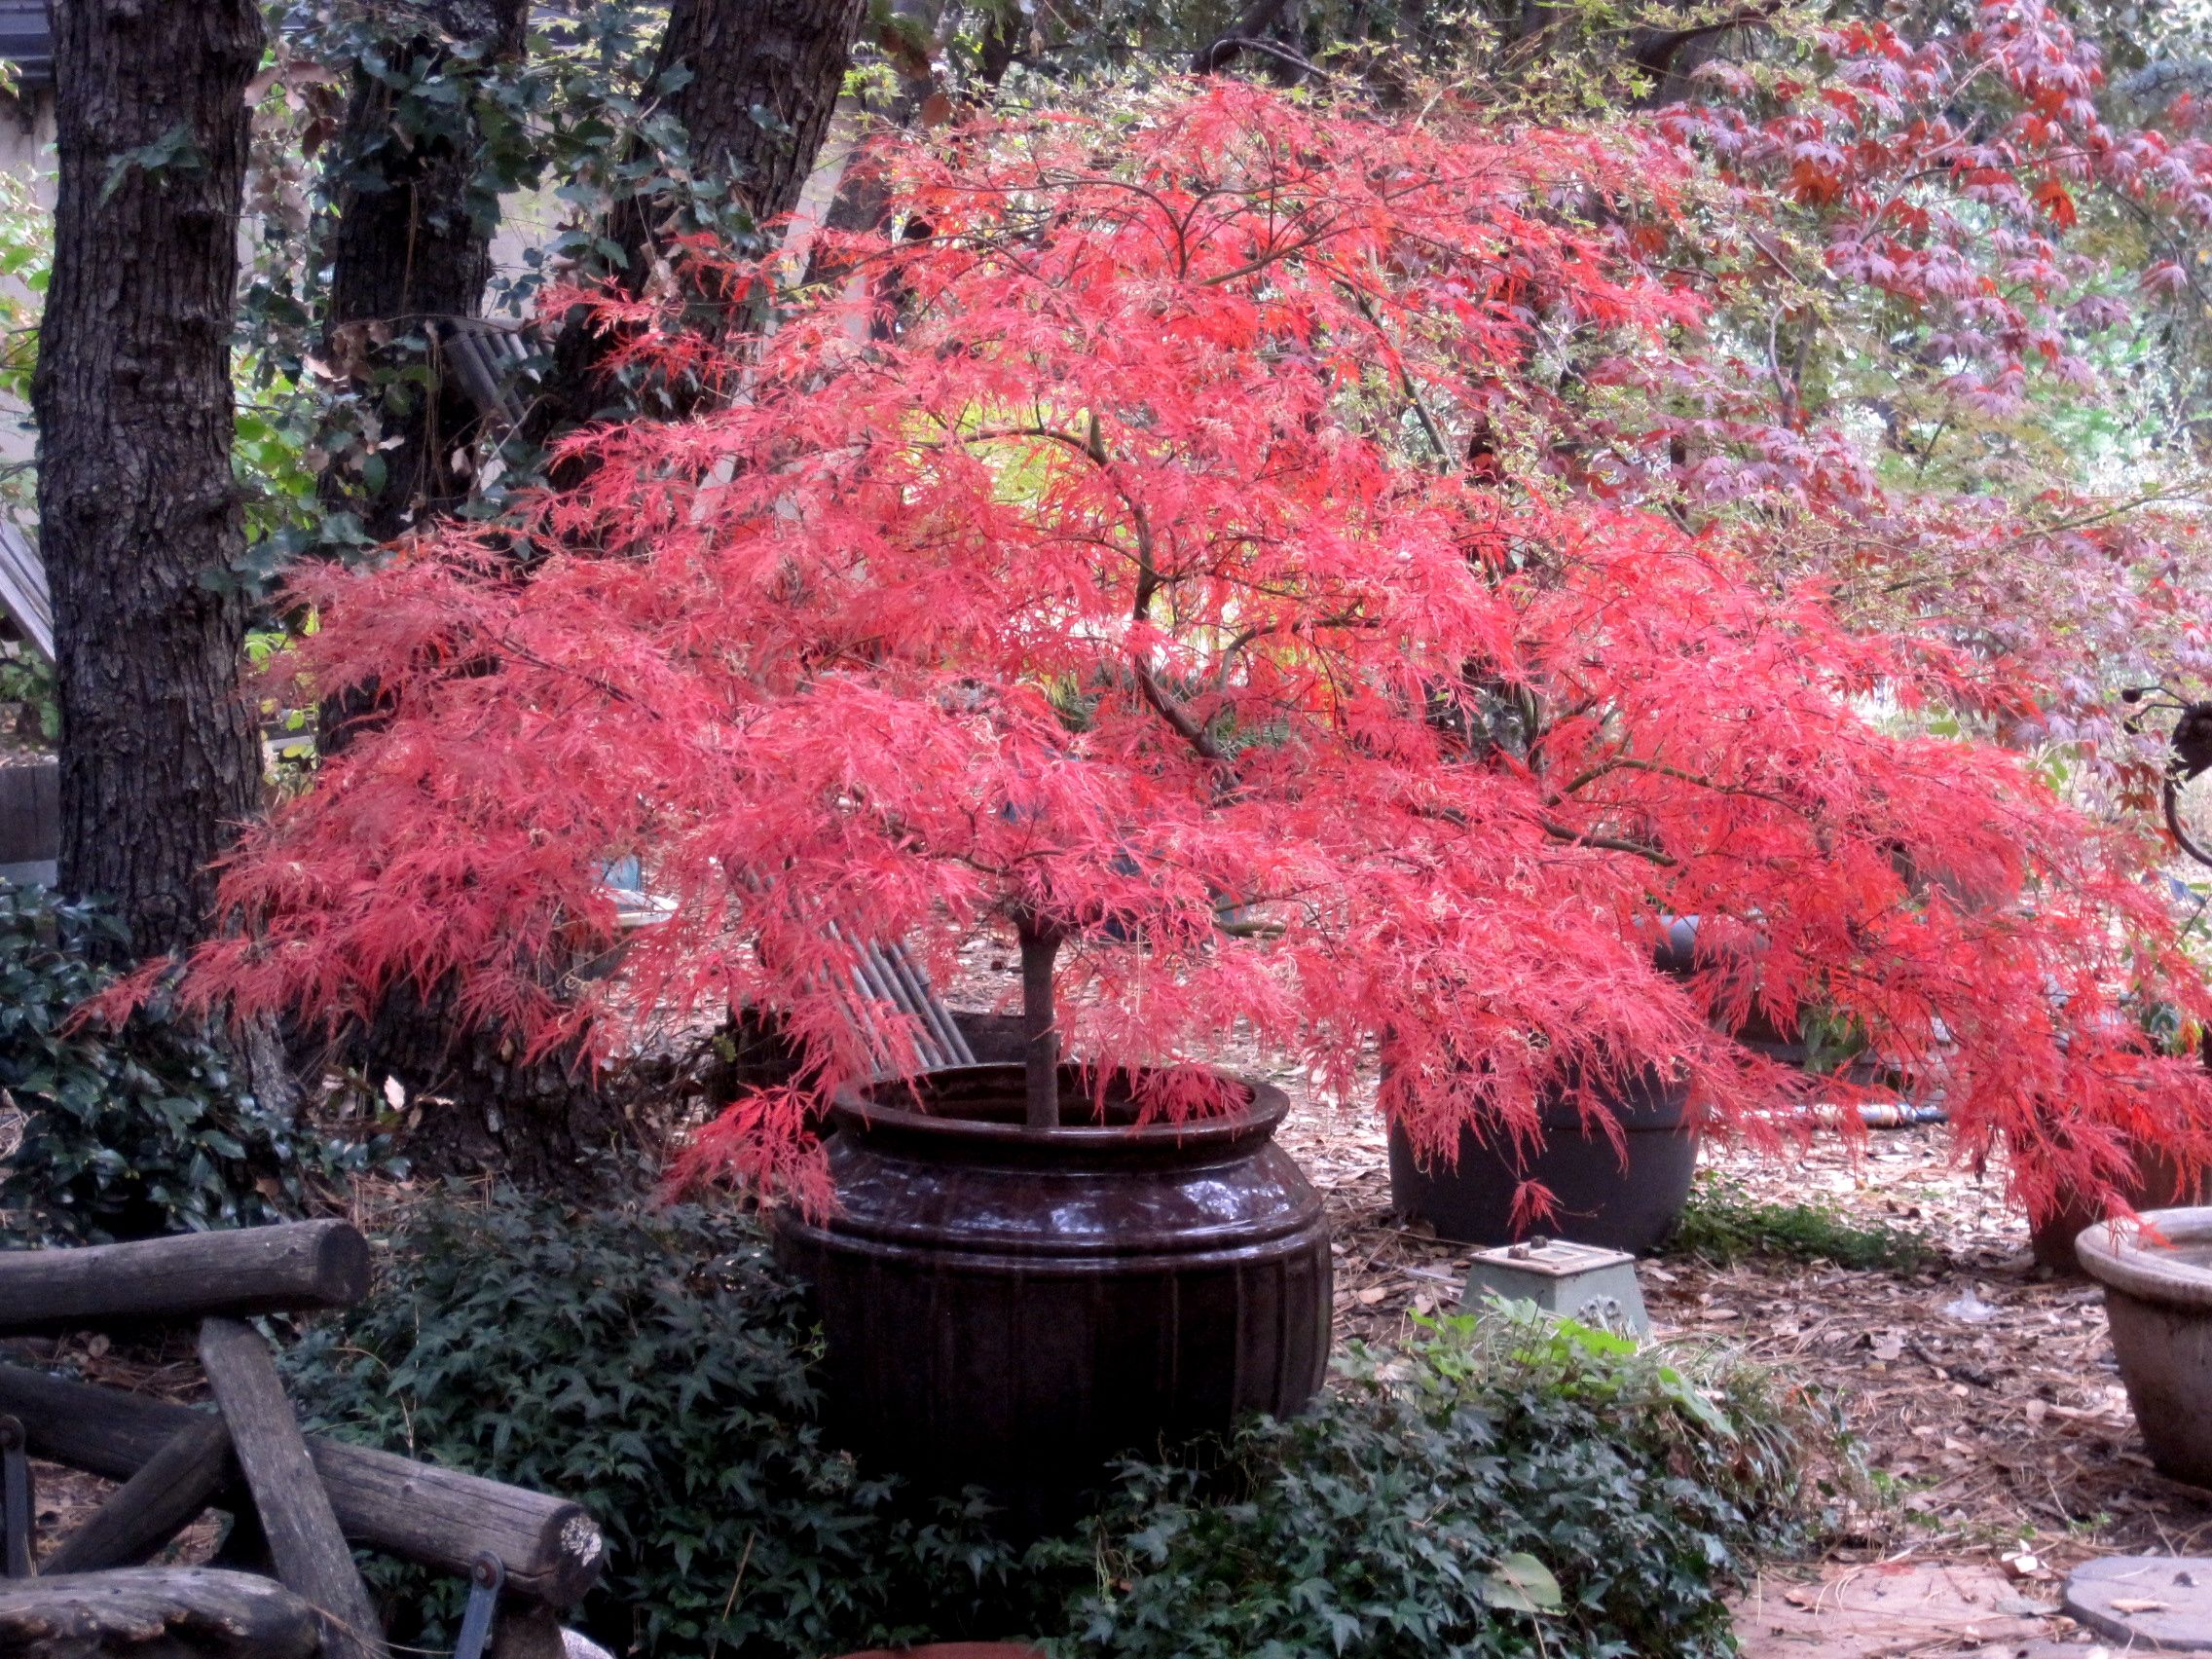 f9928030683e278a199449570a331d93 - Japanese Maple Trees For Small Gardens